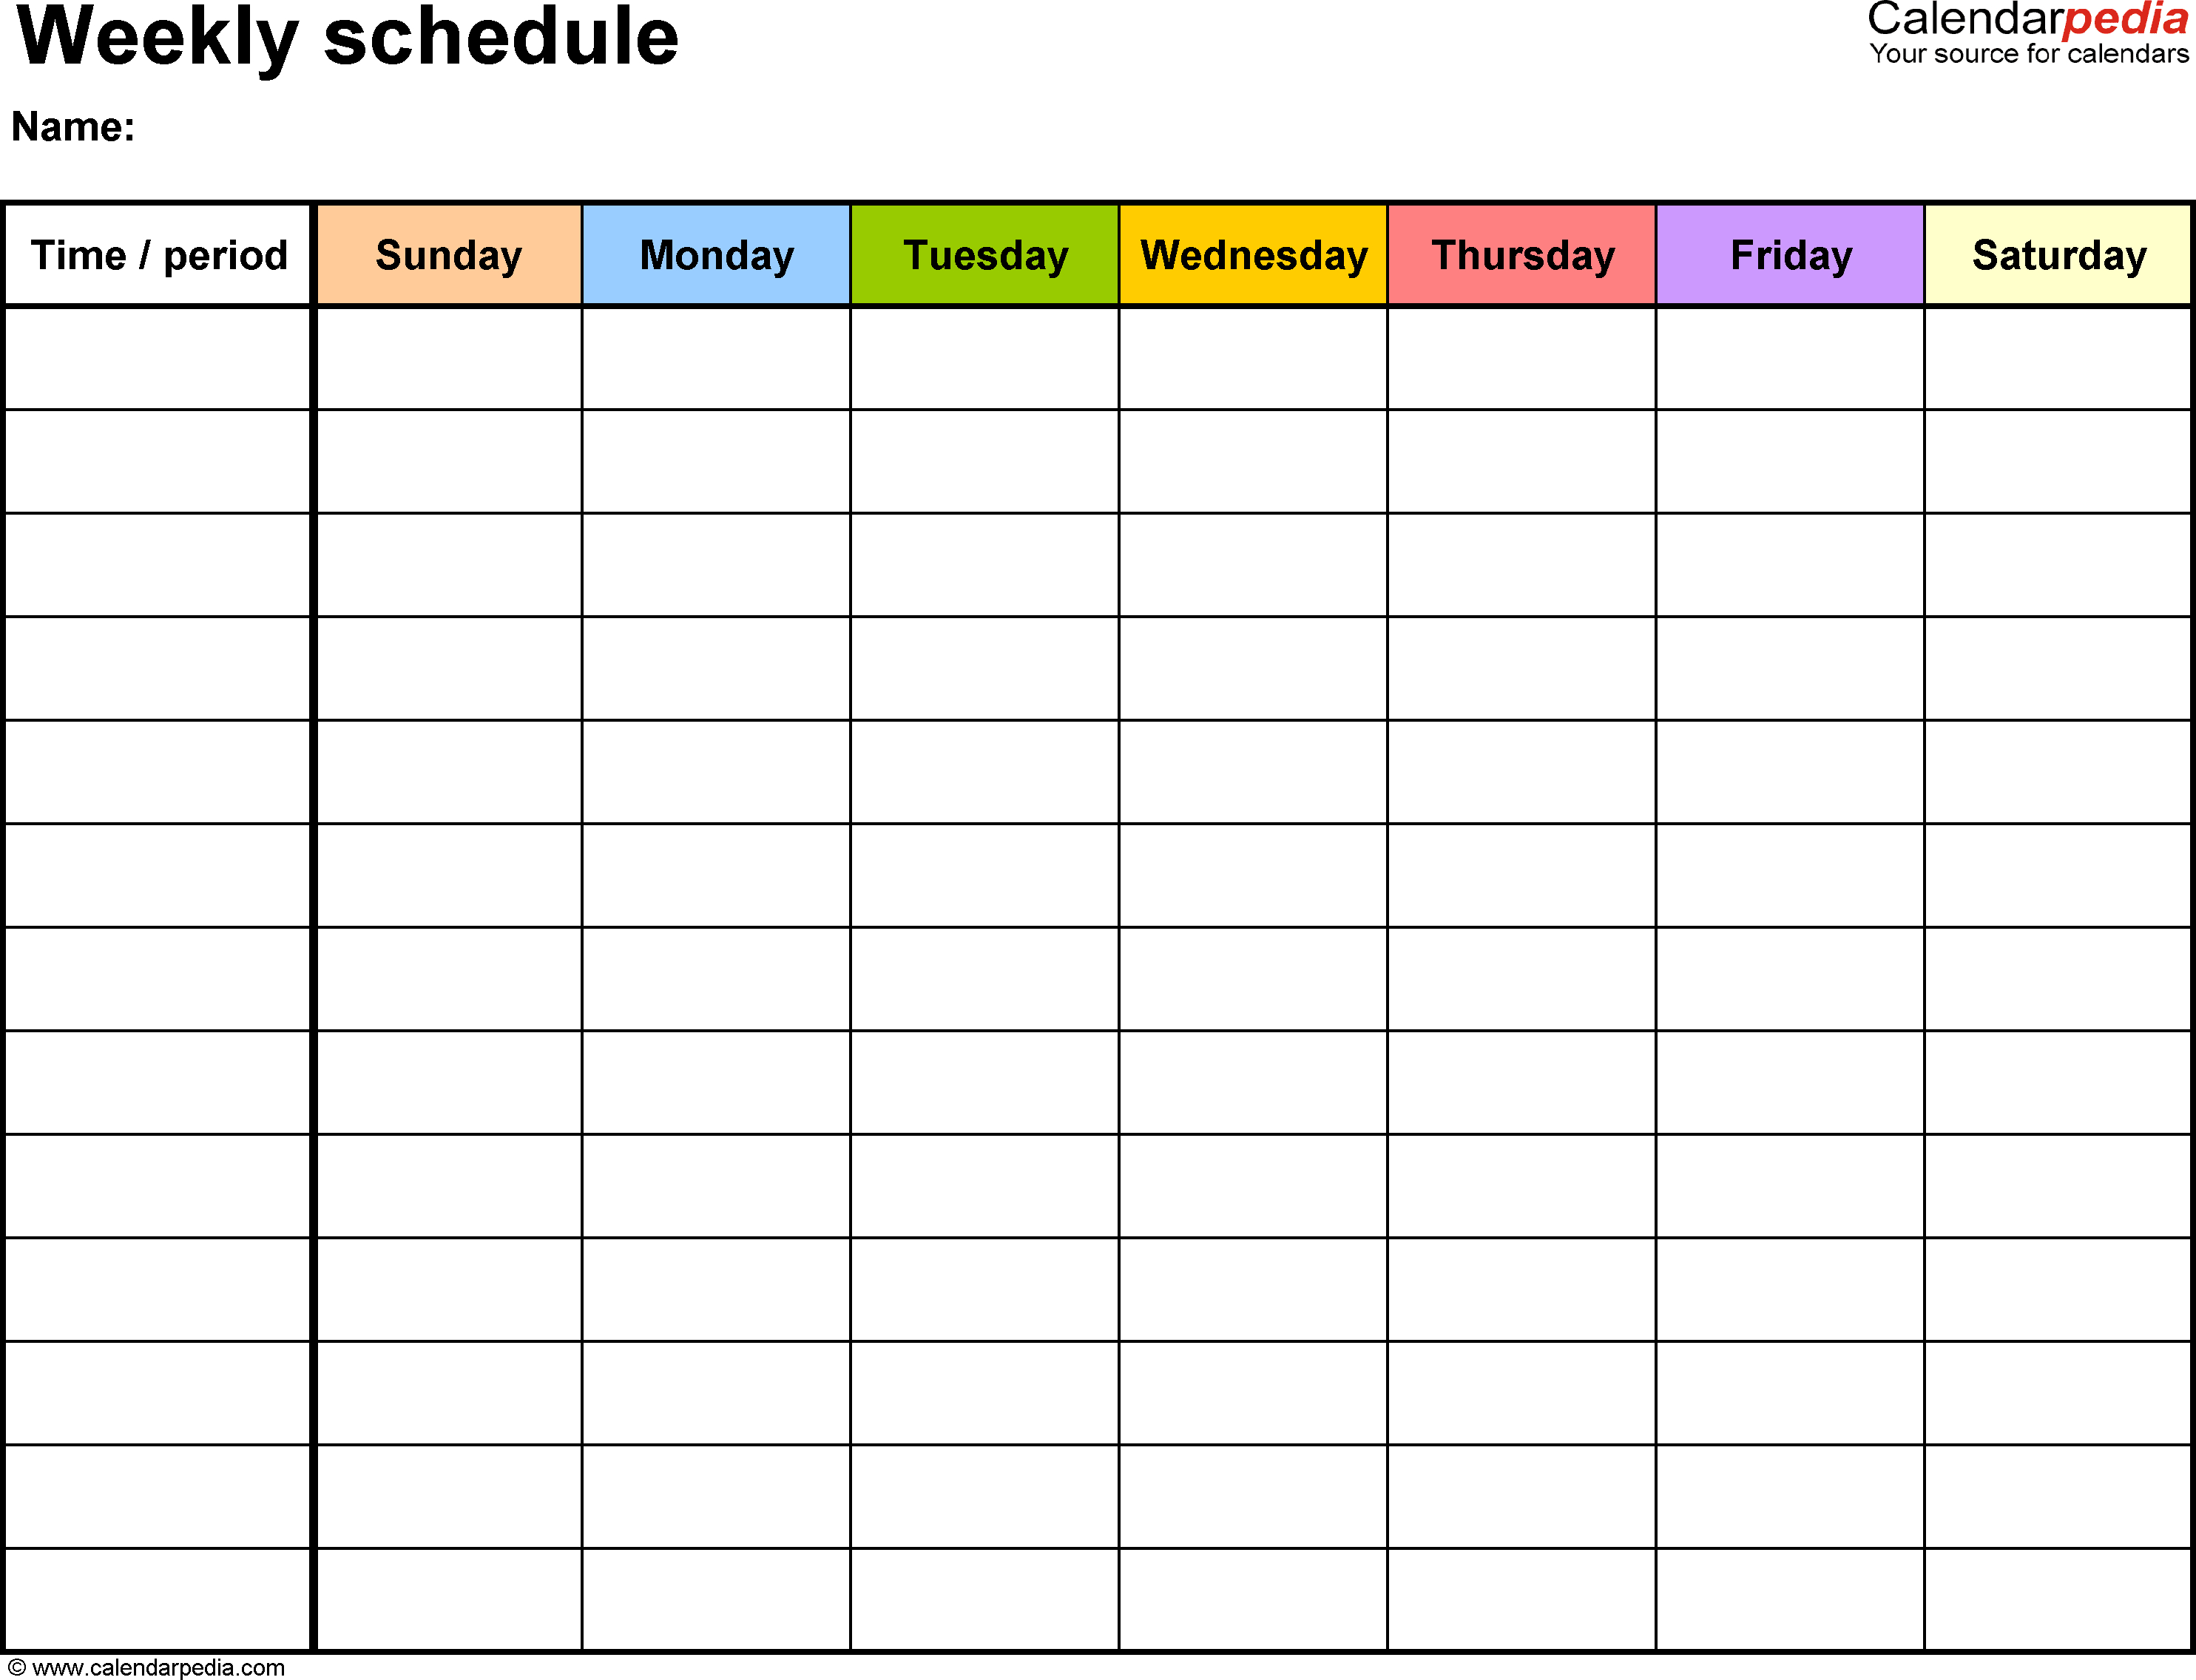 Free Weekly Schedule Templates For Word - 18 Templates with Empty Calendar Template For Kids